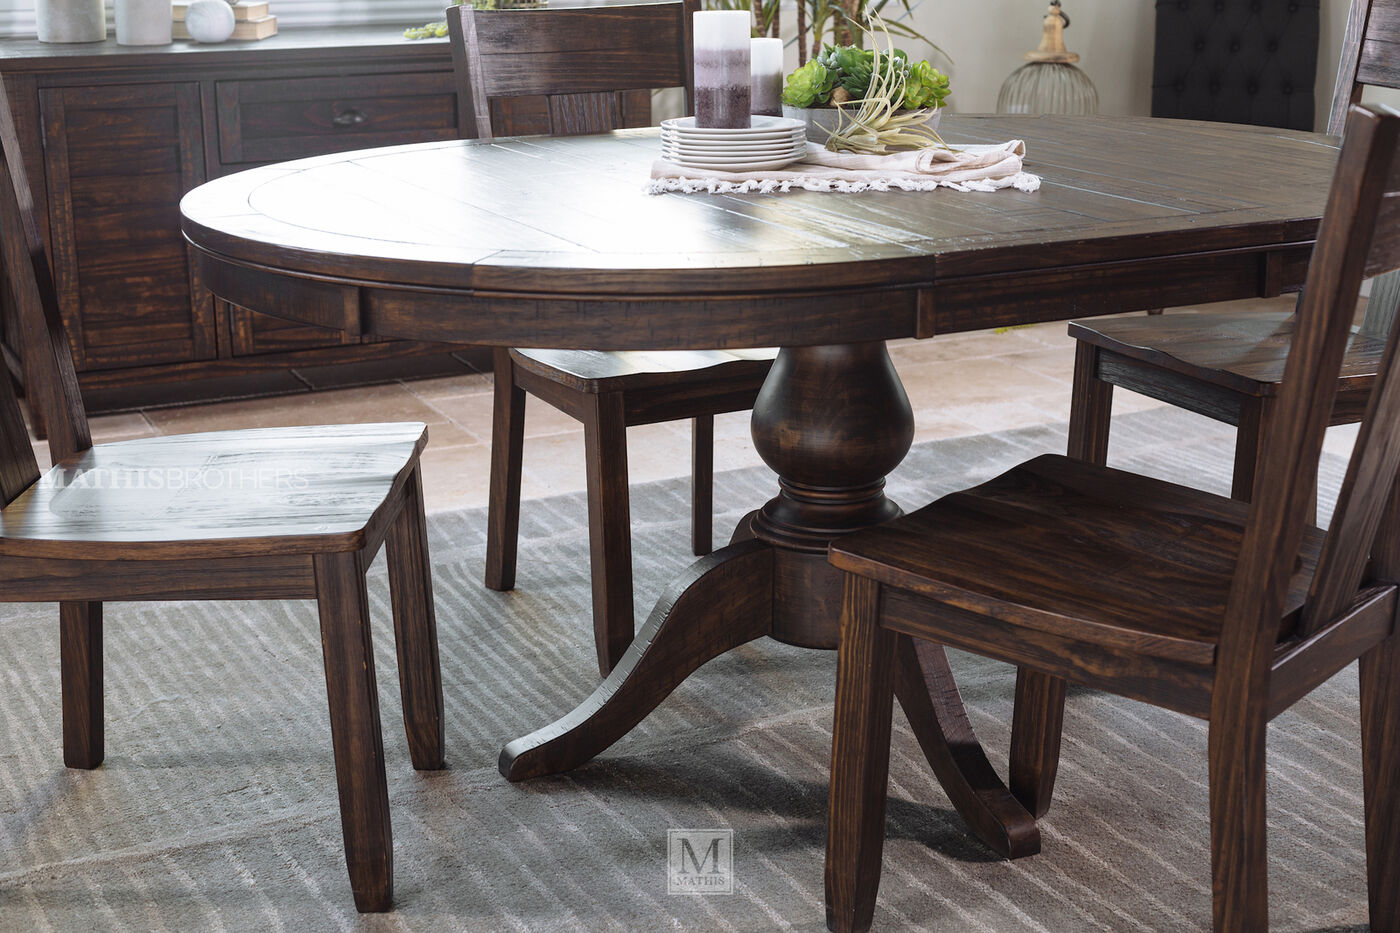 Rustic farmhouse 48 to 66 round solid pine table in dark for Dining room tables 48 round